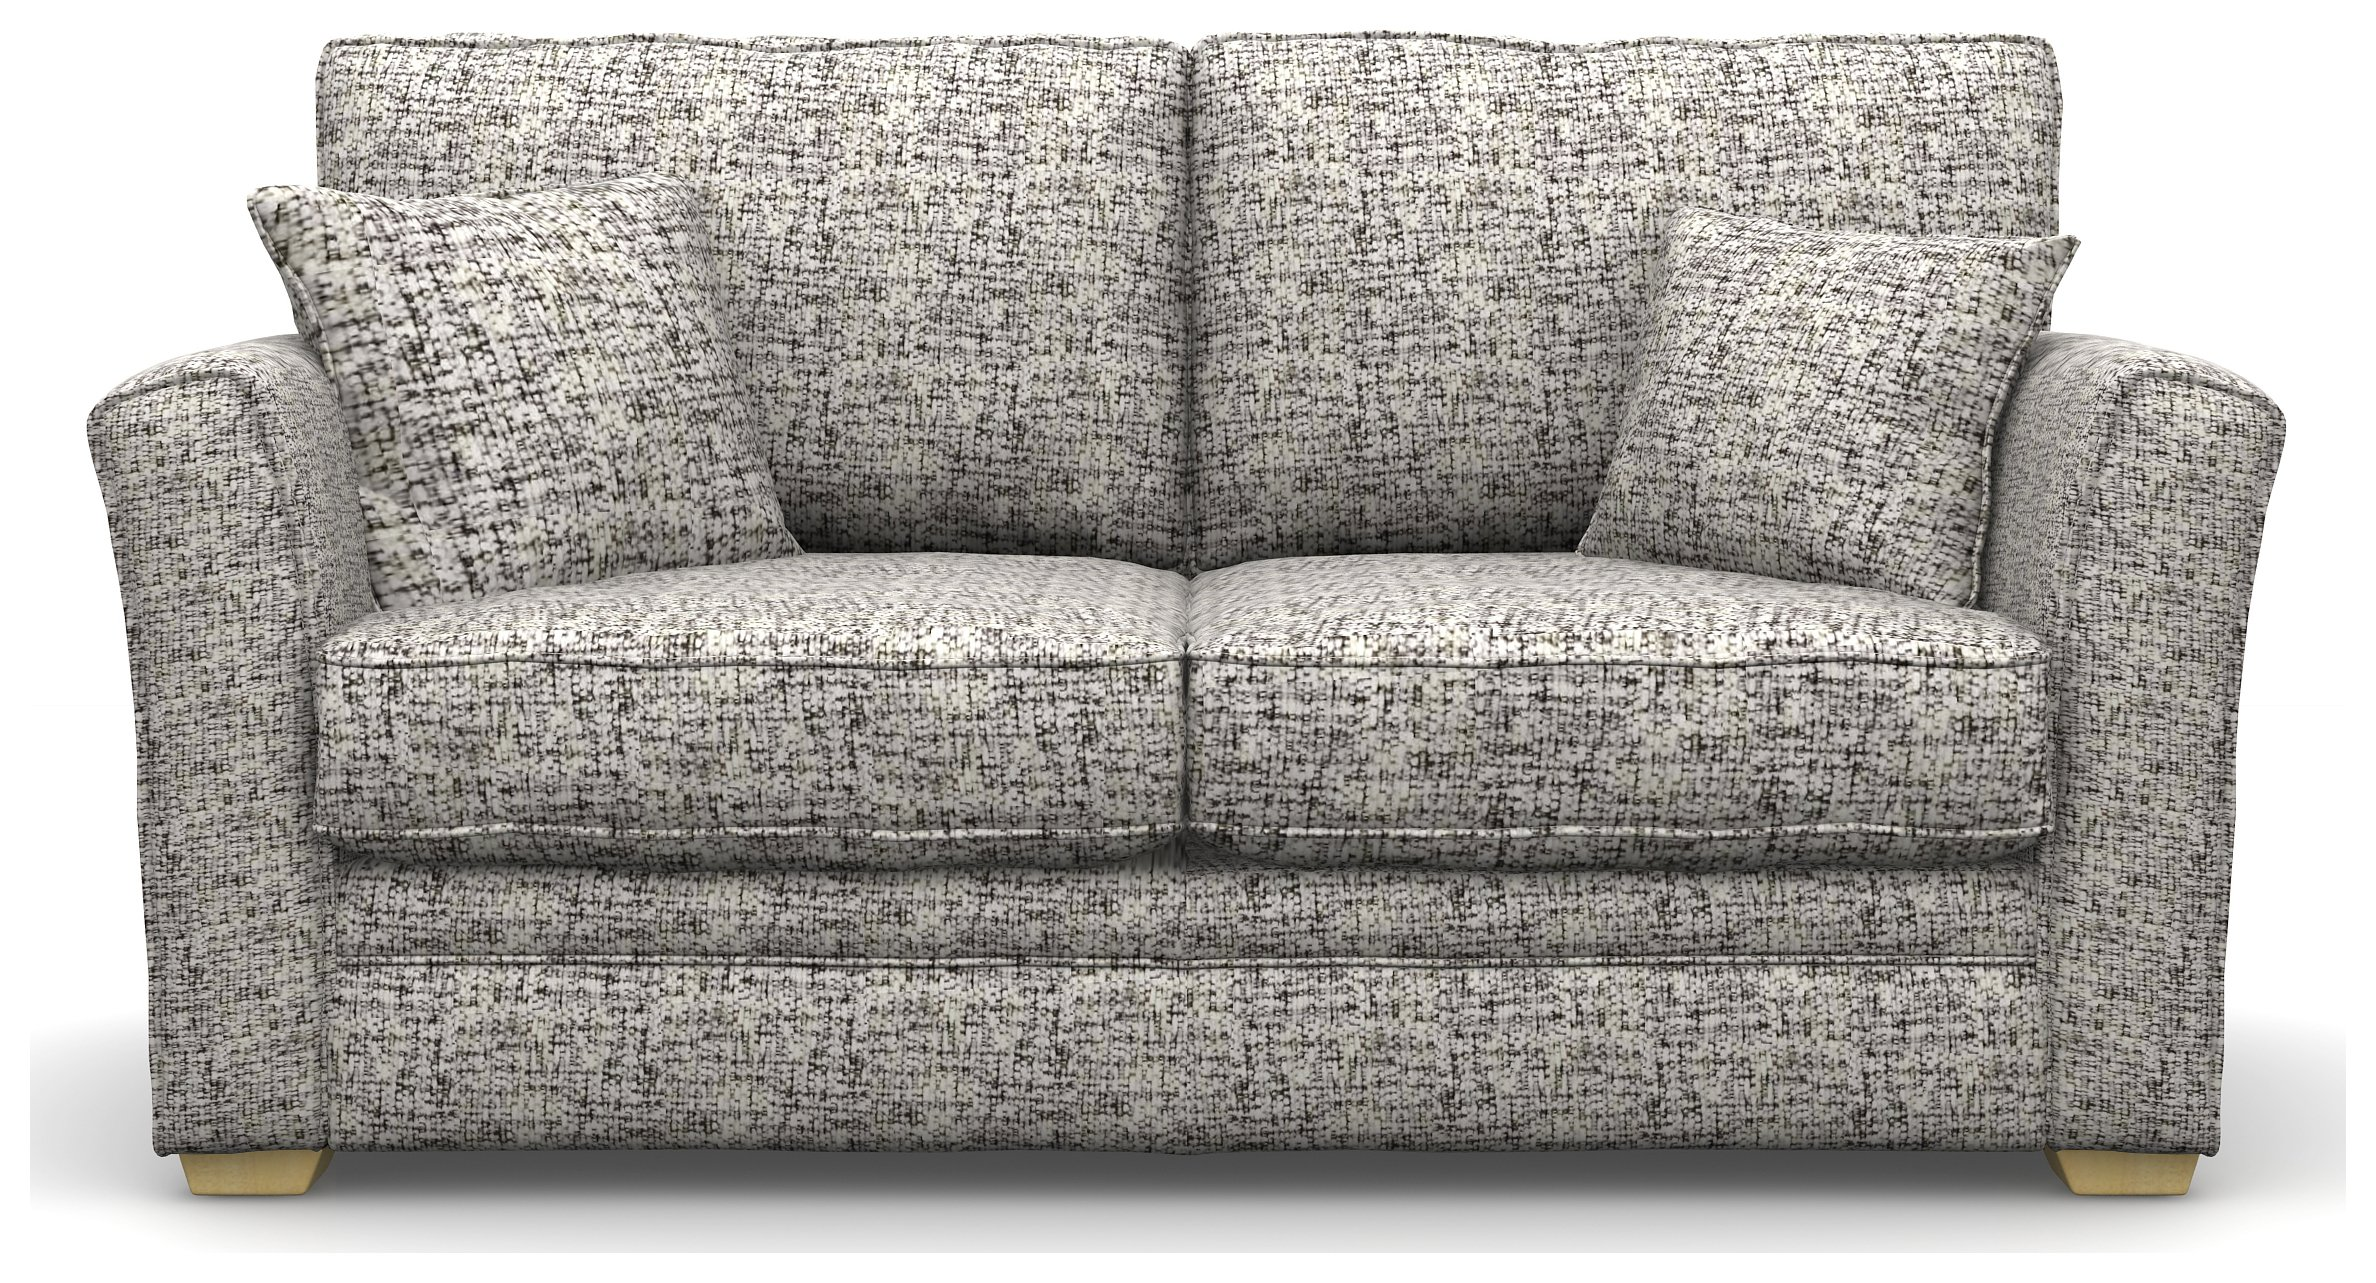 Create your own Heart of House Malton 2 Seater Fabric Sofa Bed - Stone